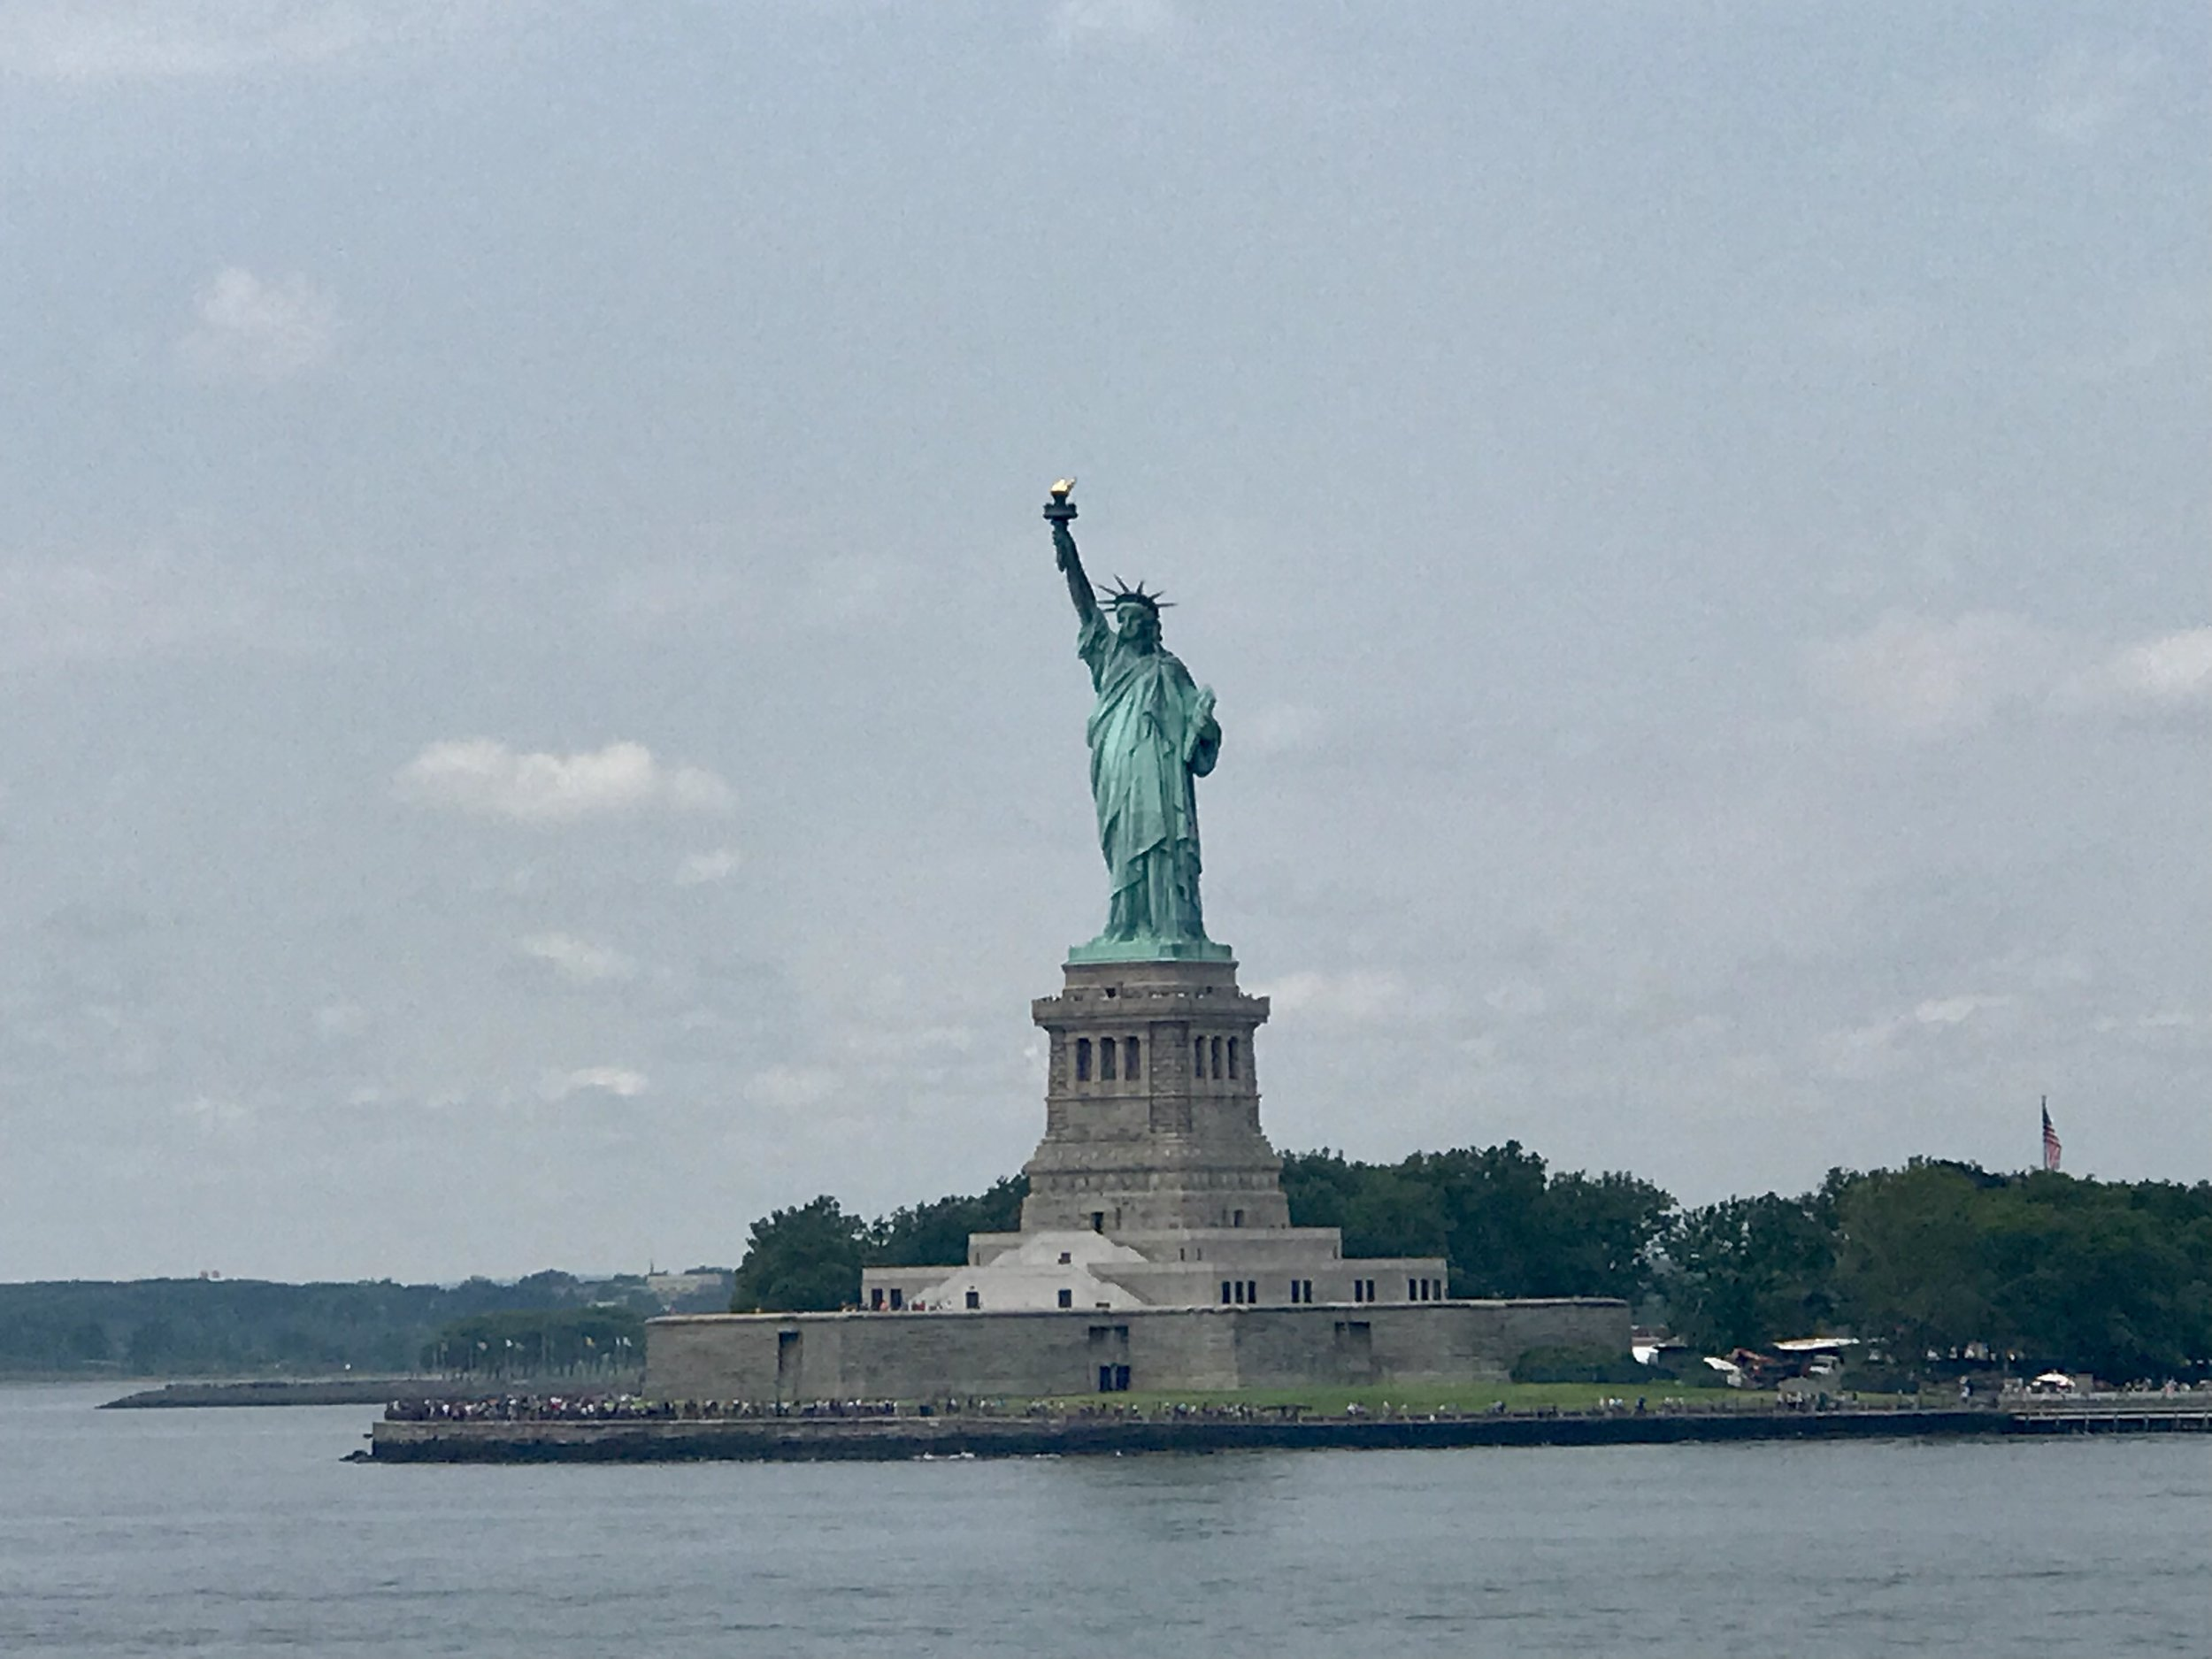 First time seeing the Statue of Liberty